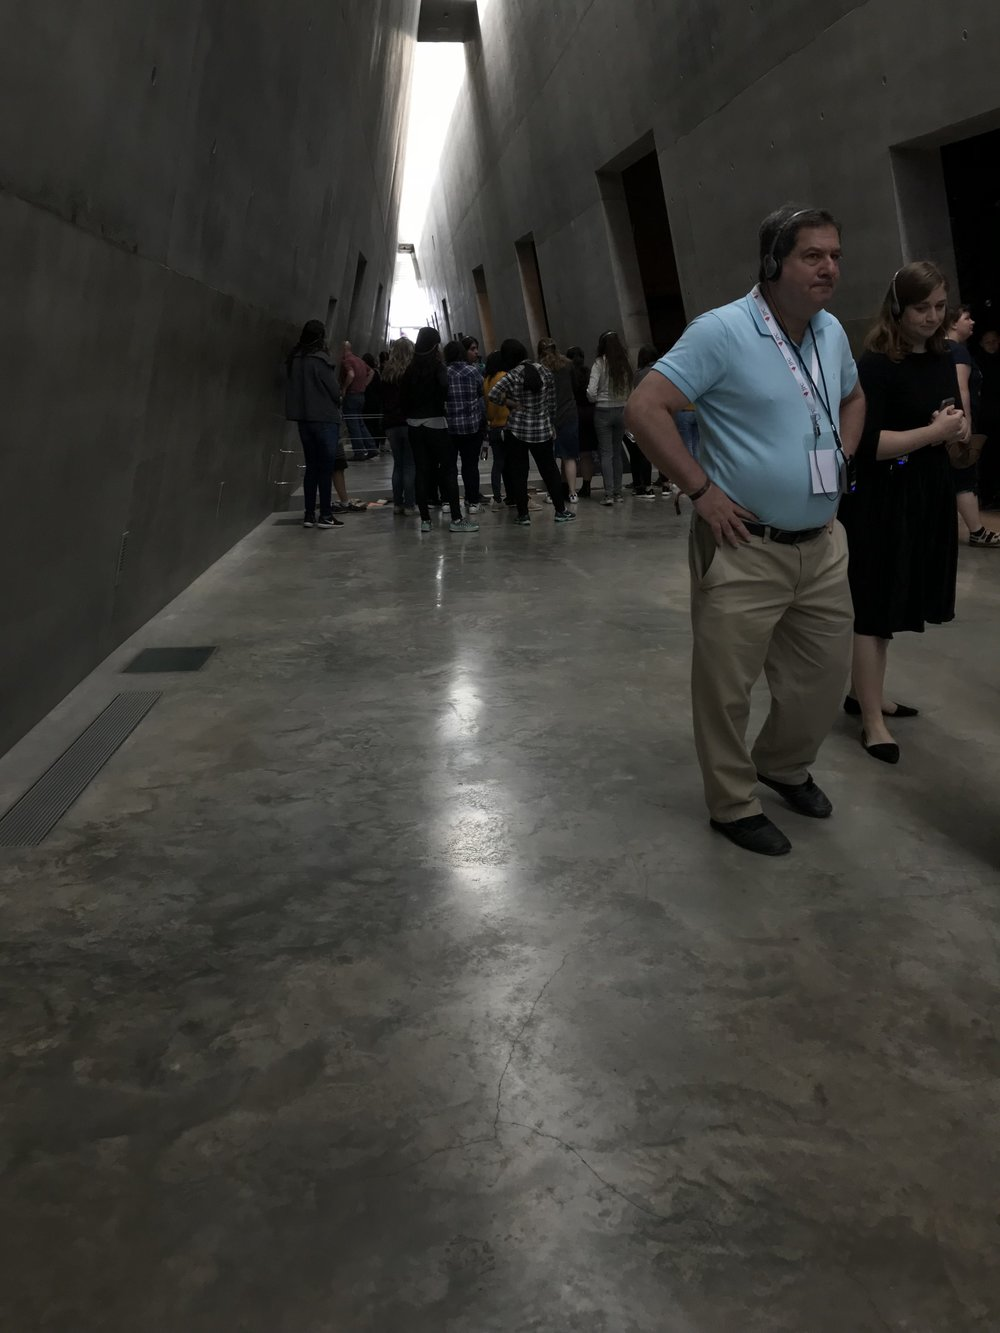 The museum is designed so you start at the closed, darkened end, but progress toward the light.